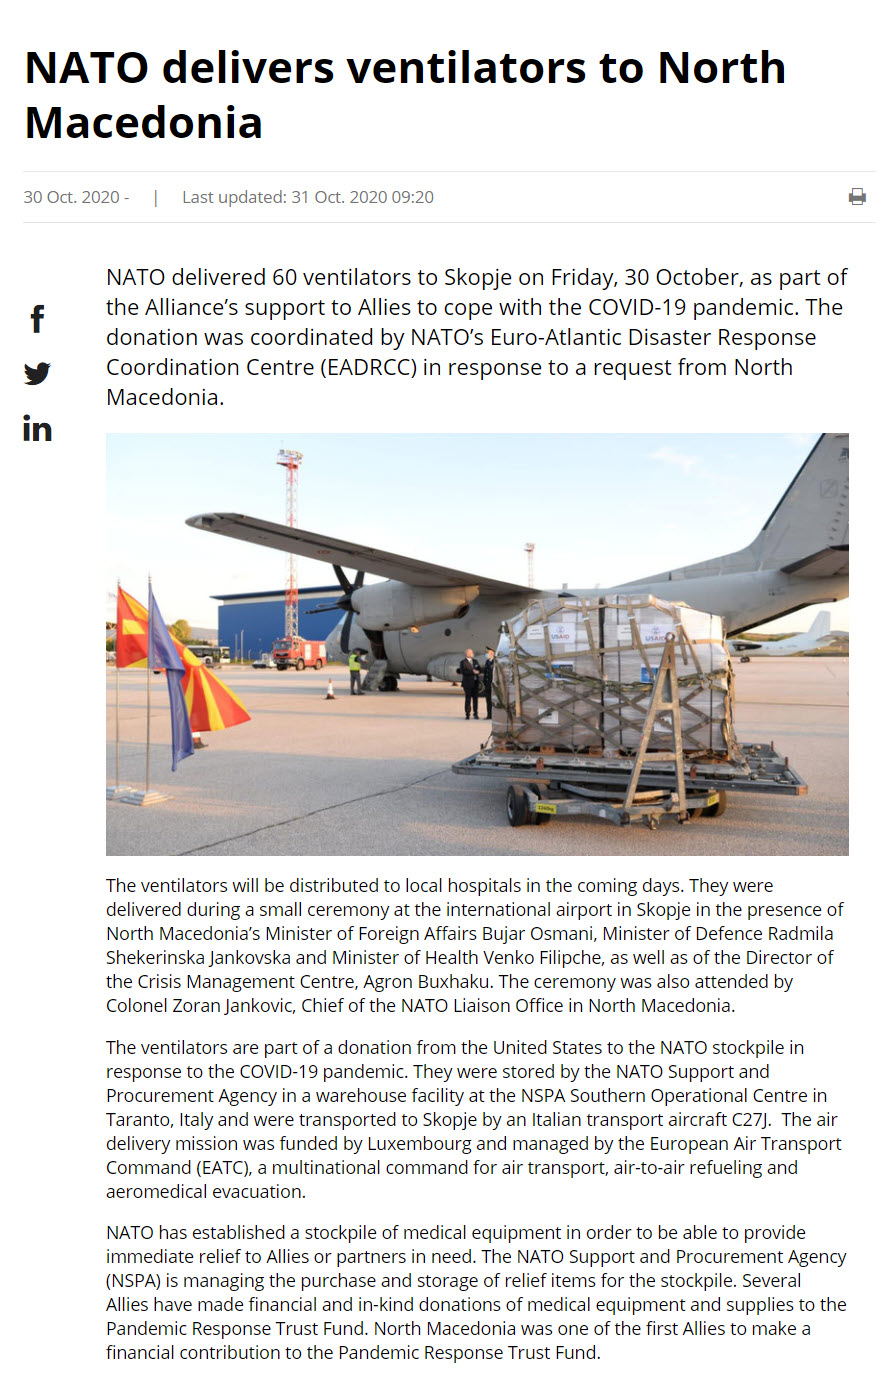 NATO delivers to Macedonia on 20 October - 3 nov